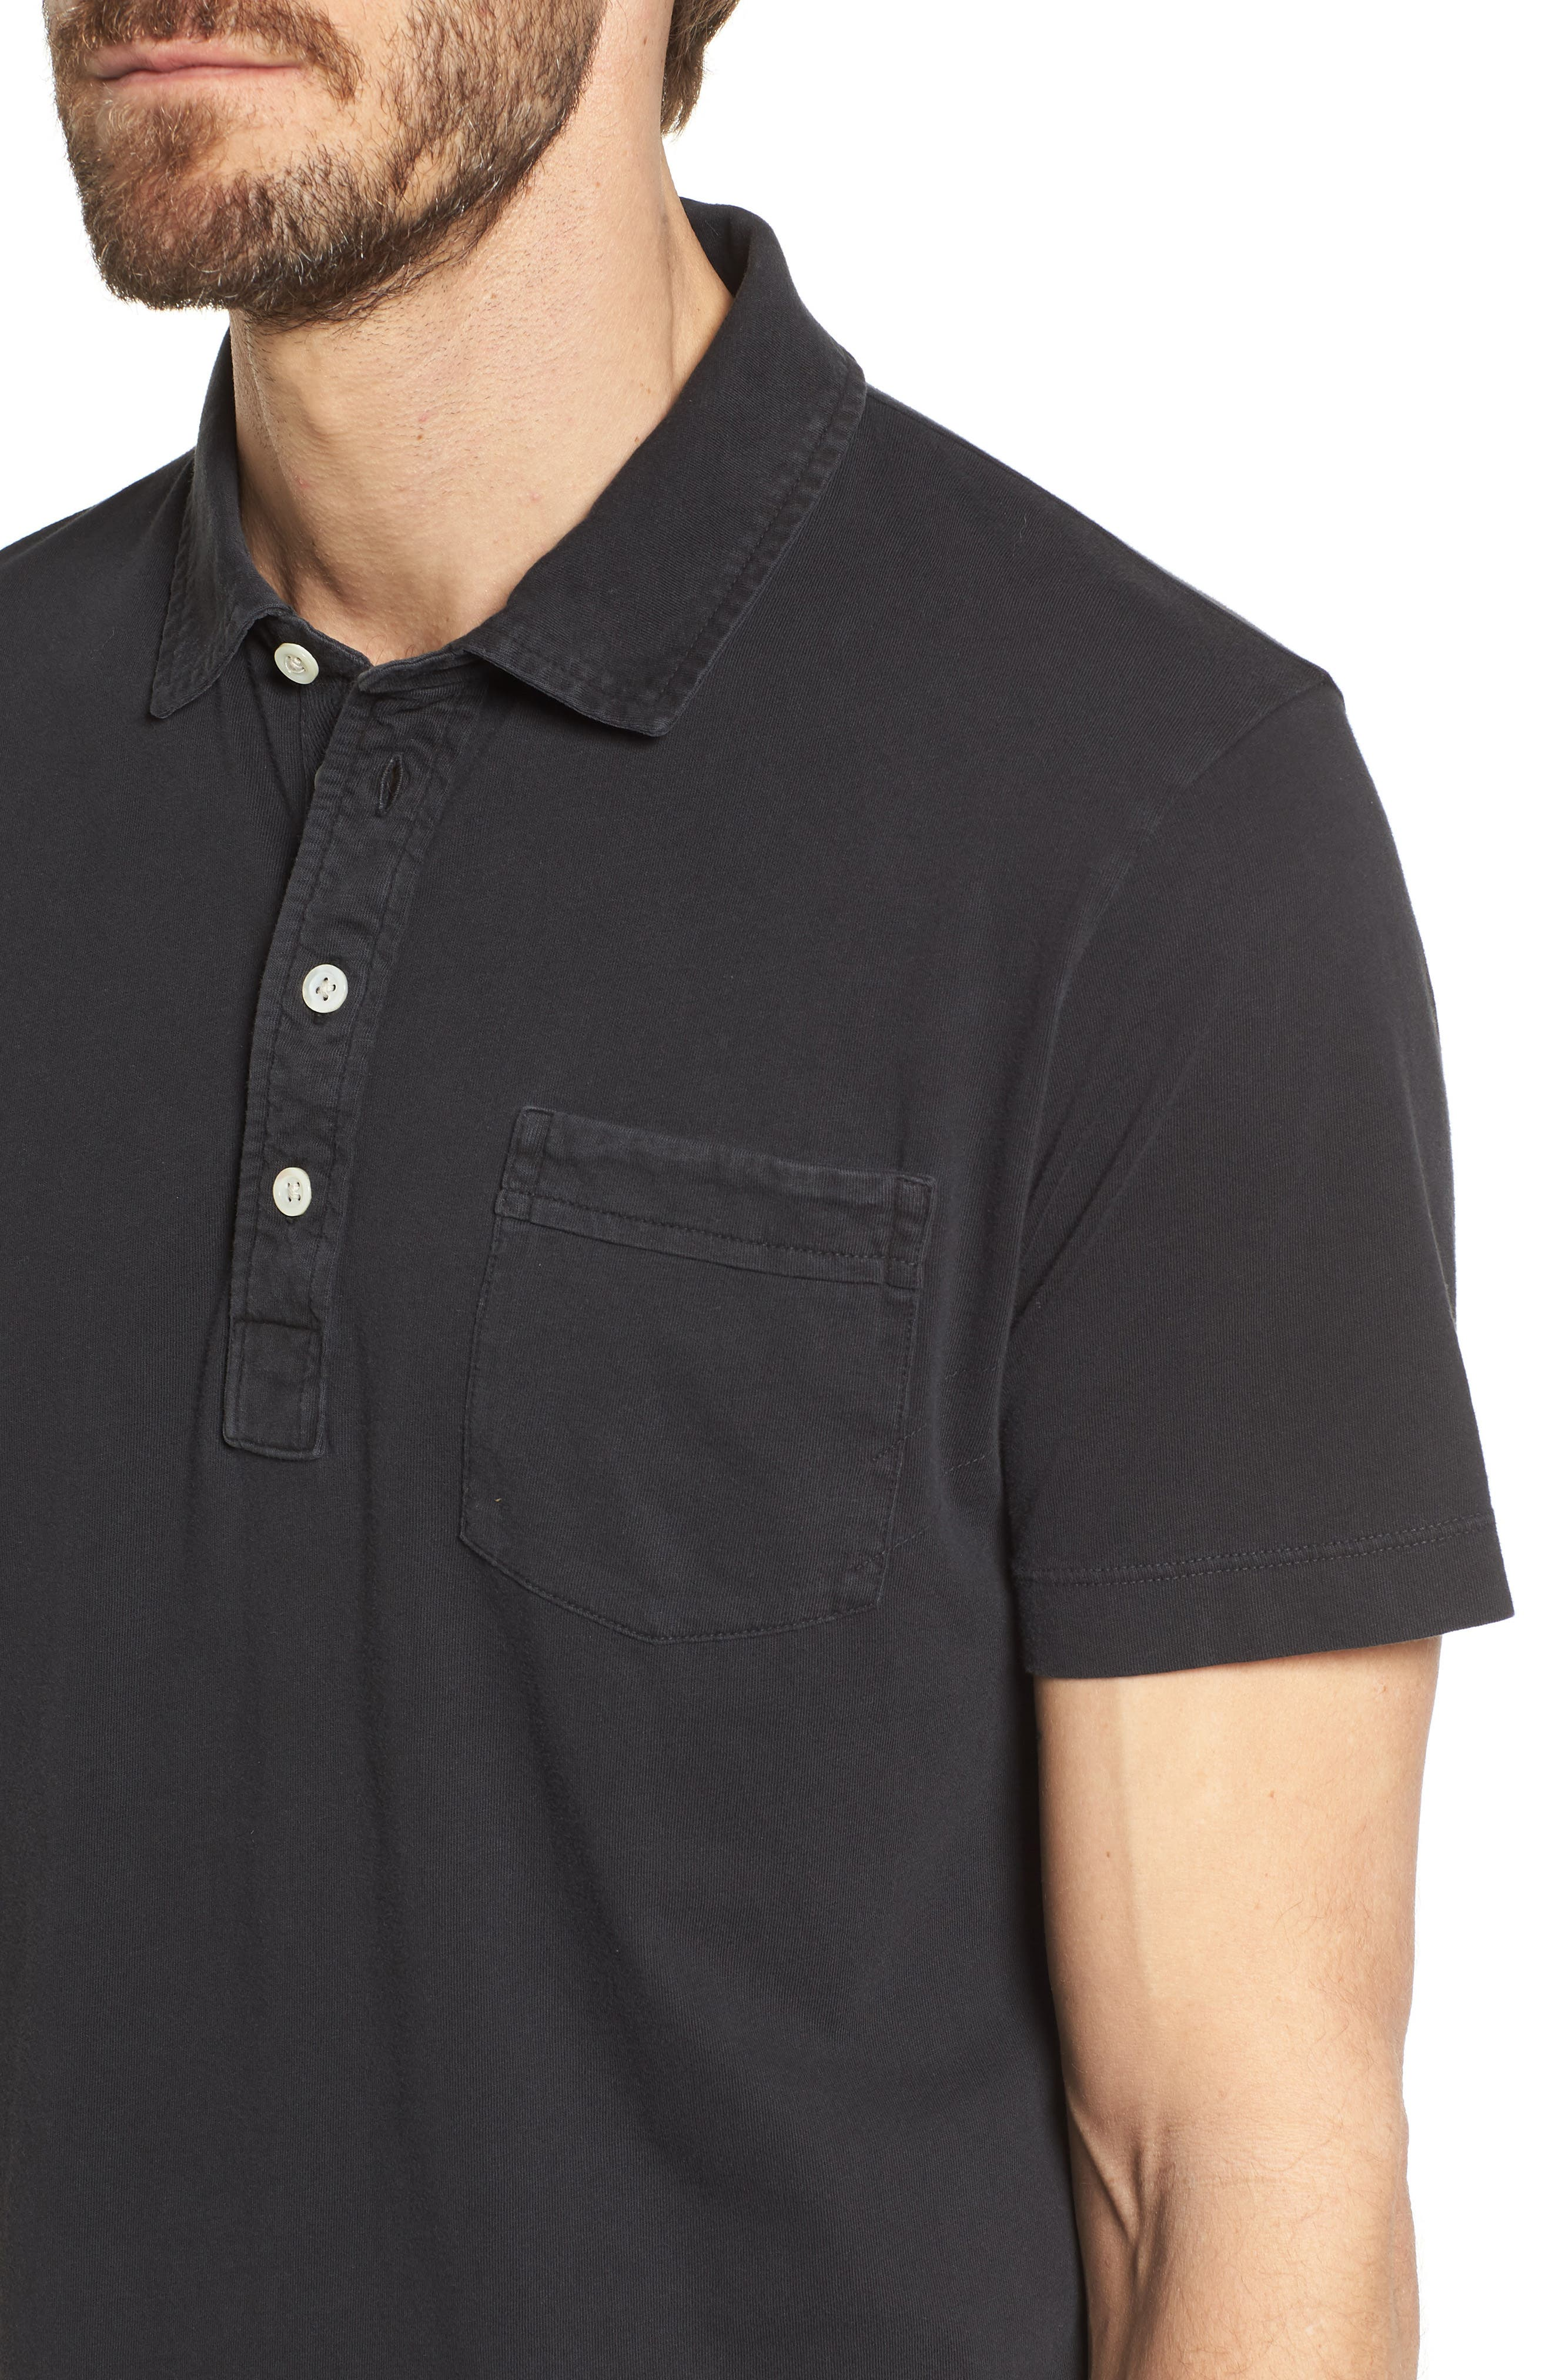 Pensacola Slim Fit Garment Dye Polo,                             Alternate thumbnail 4, color,                             BLACK